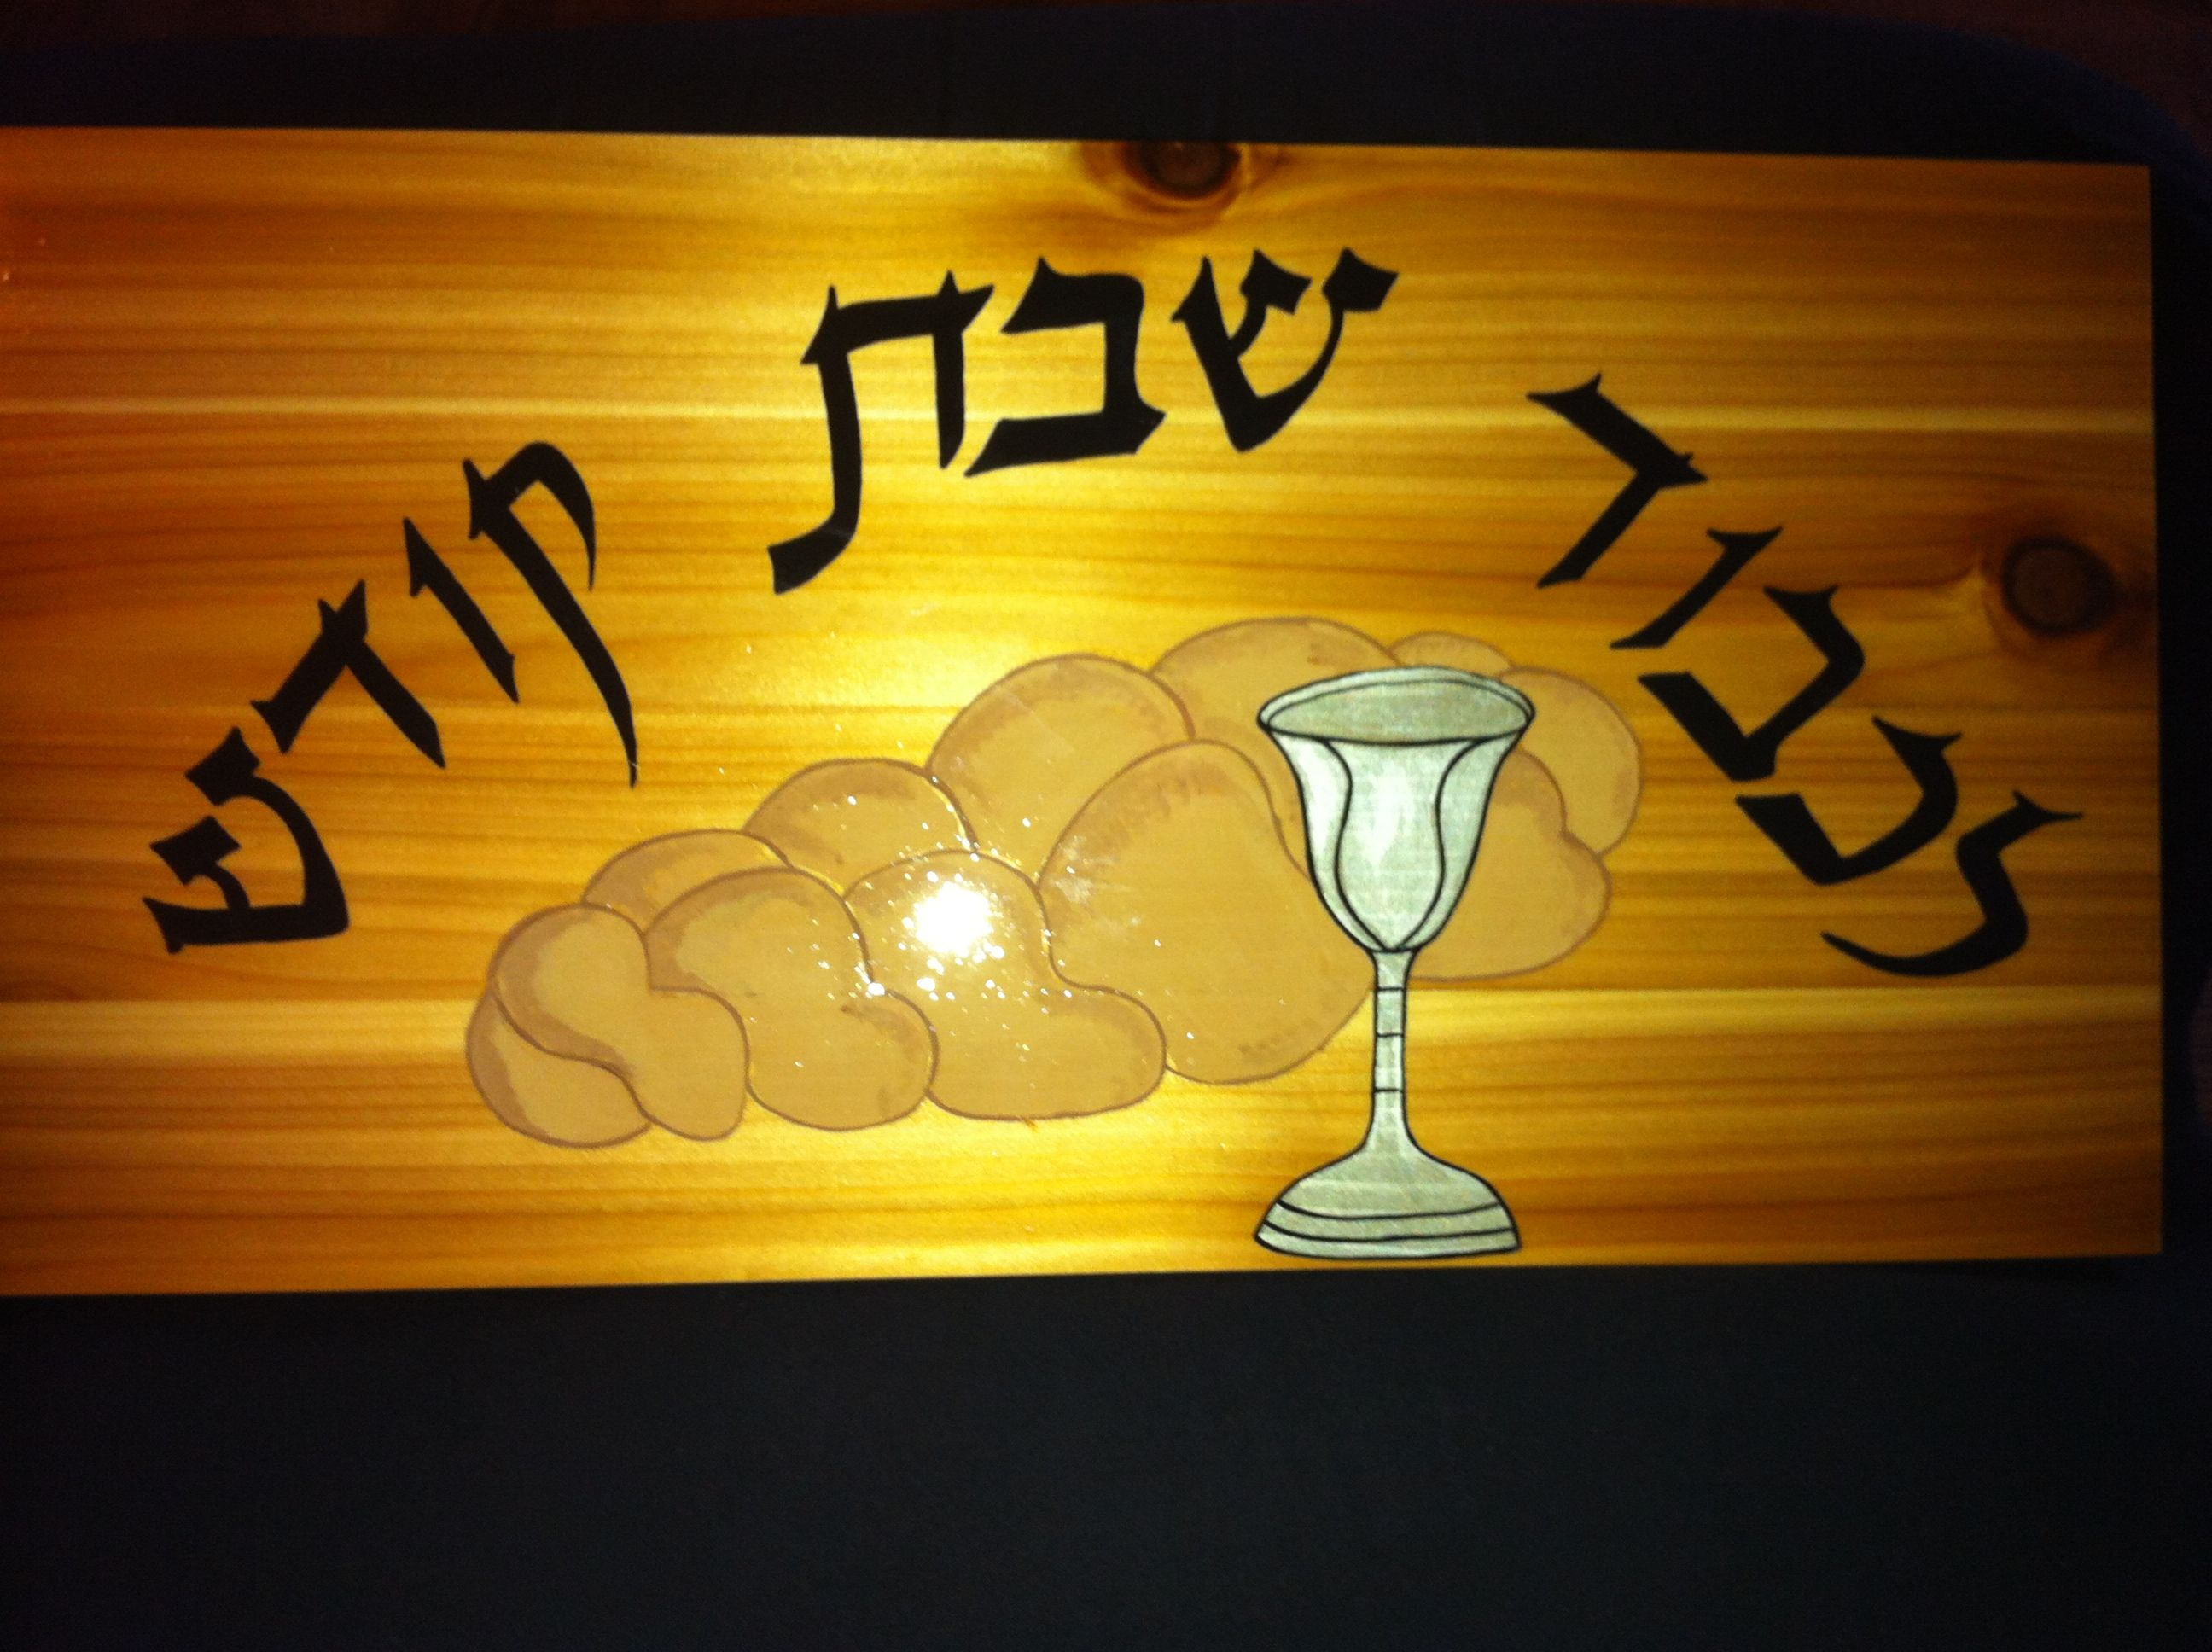 custom challah board. Can be custom made and shipped world wide. Email info@signsbydesign.ca